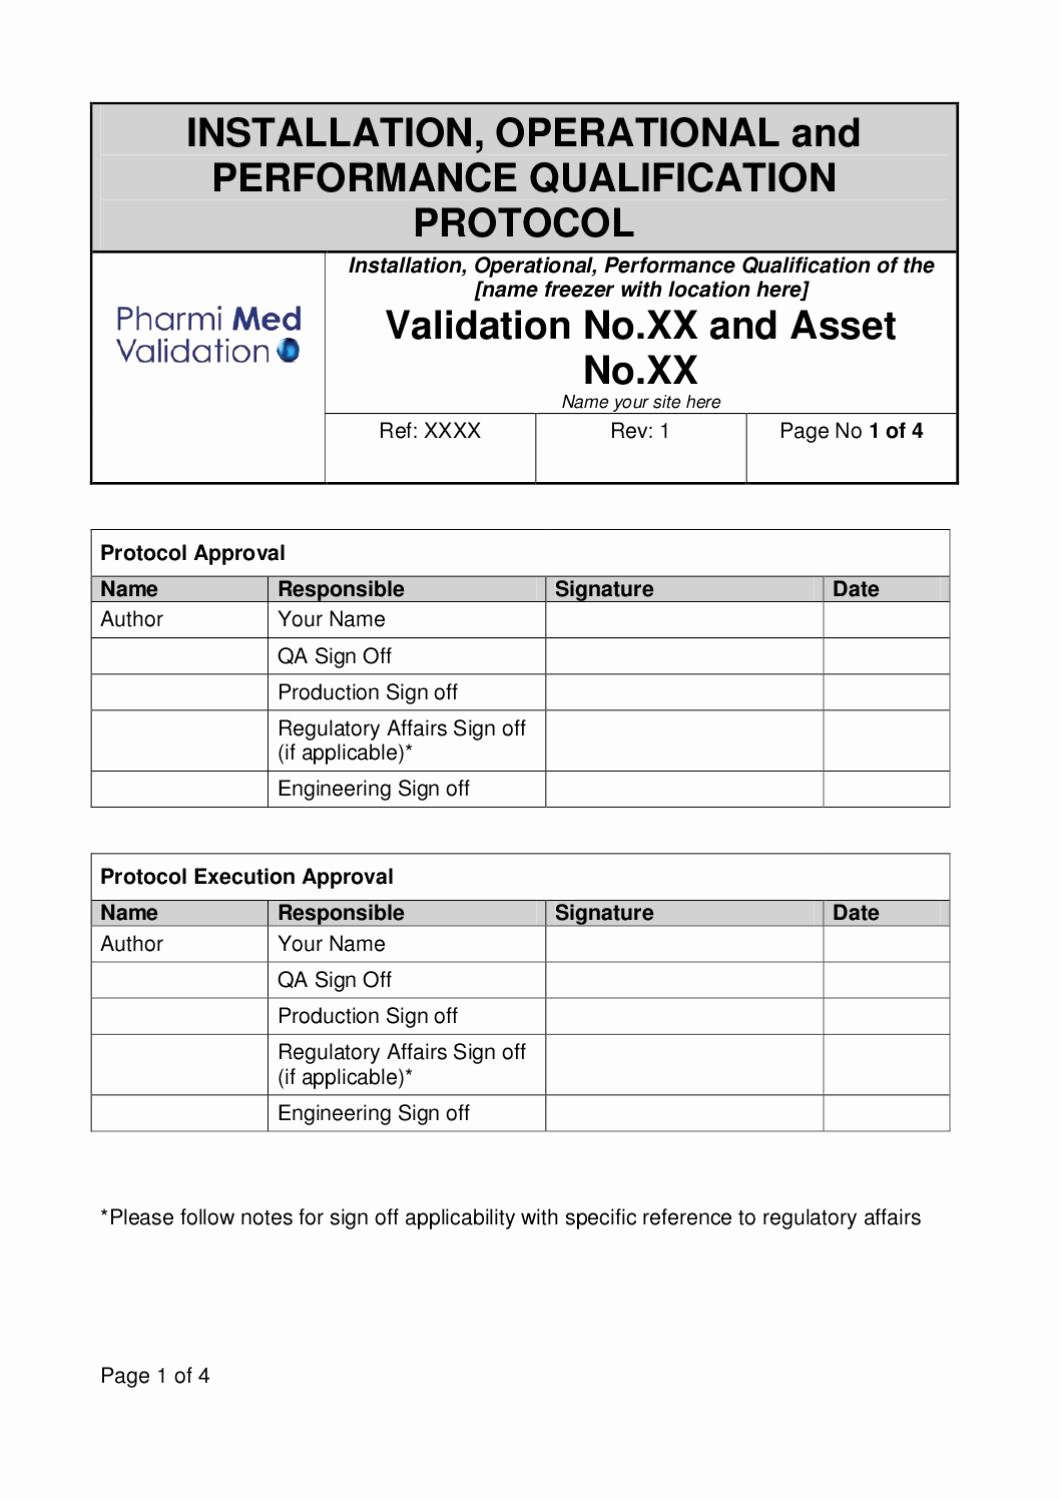 Validation Master Plan Template Lovely Iopq Freezer Validation Template Sample by Pharmi Med